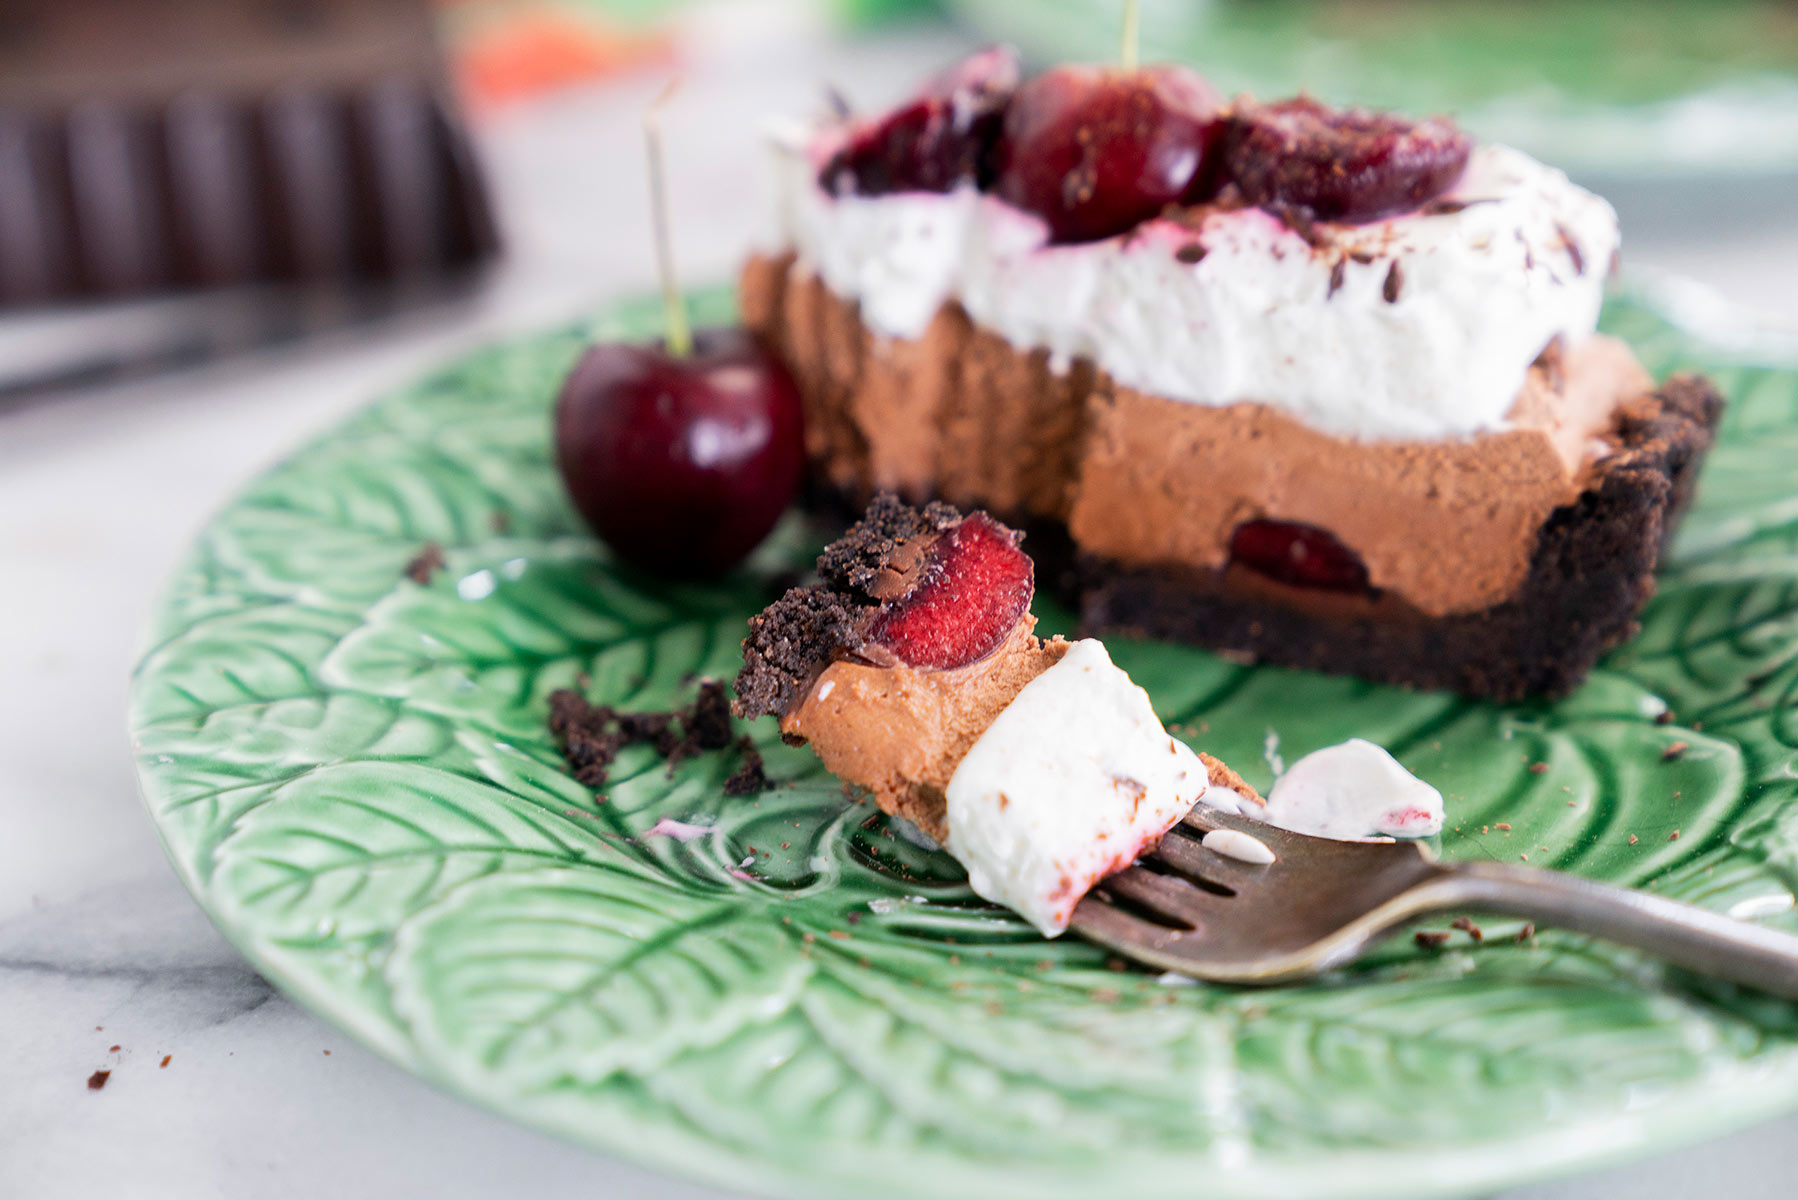 slice of black forest tart with fresh cherries and whipped cream with a bite taken out on a green plate